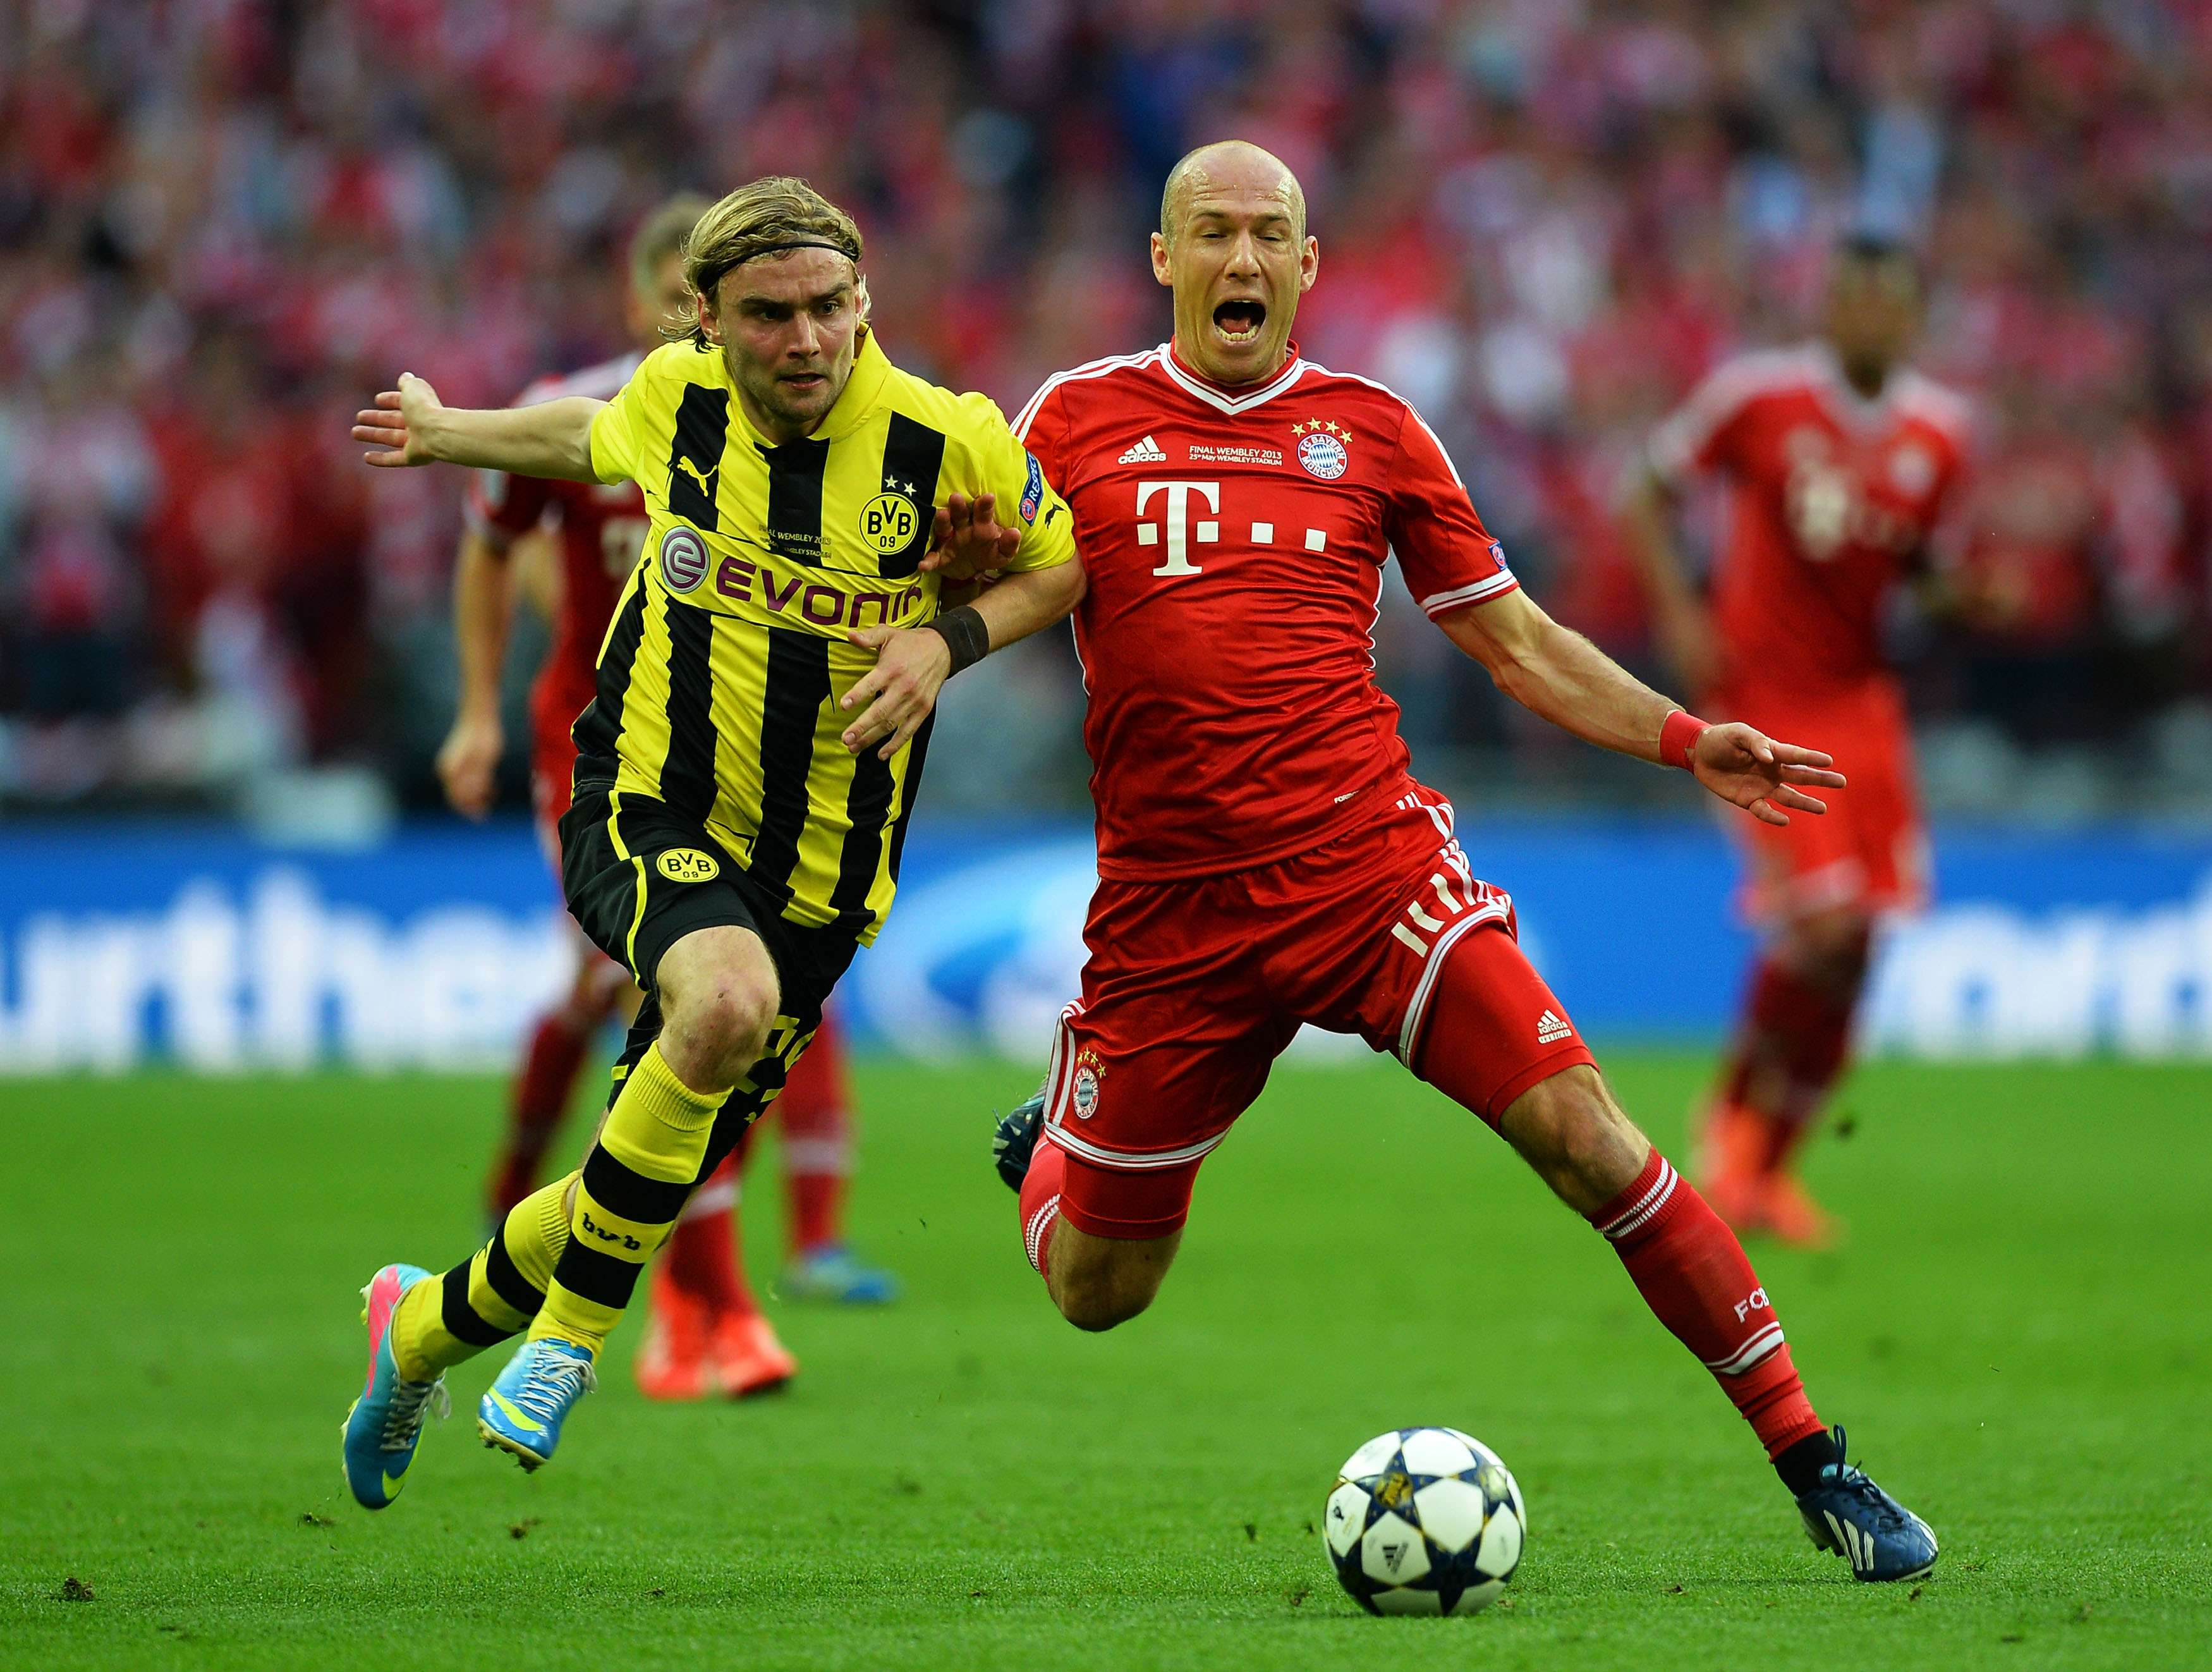 Los favoritos son Bayern Múnich y Borussia Dortmund. Foto: Getty images